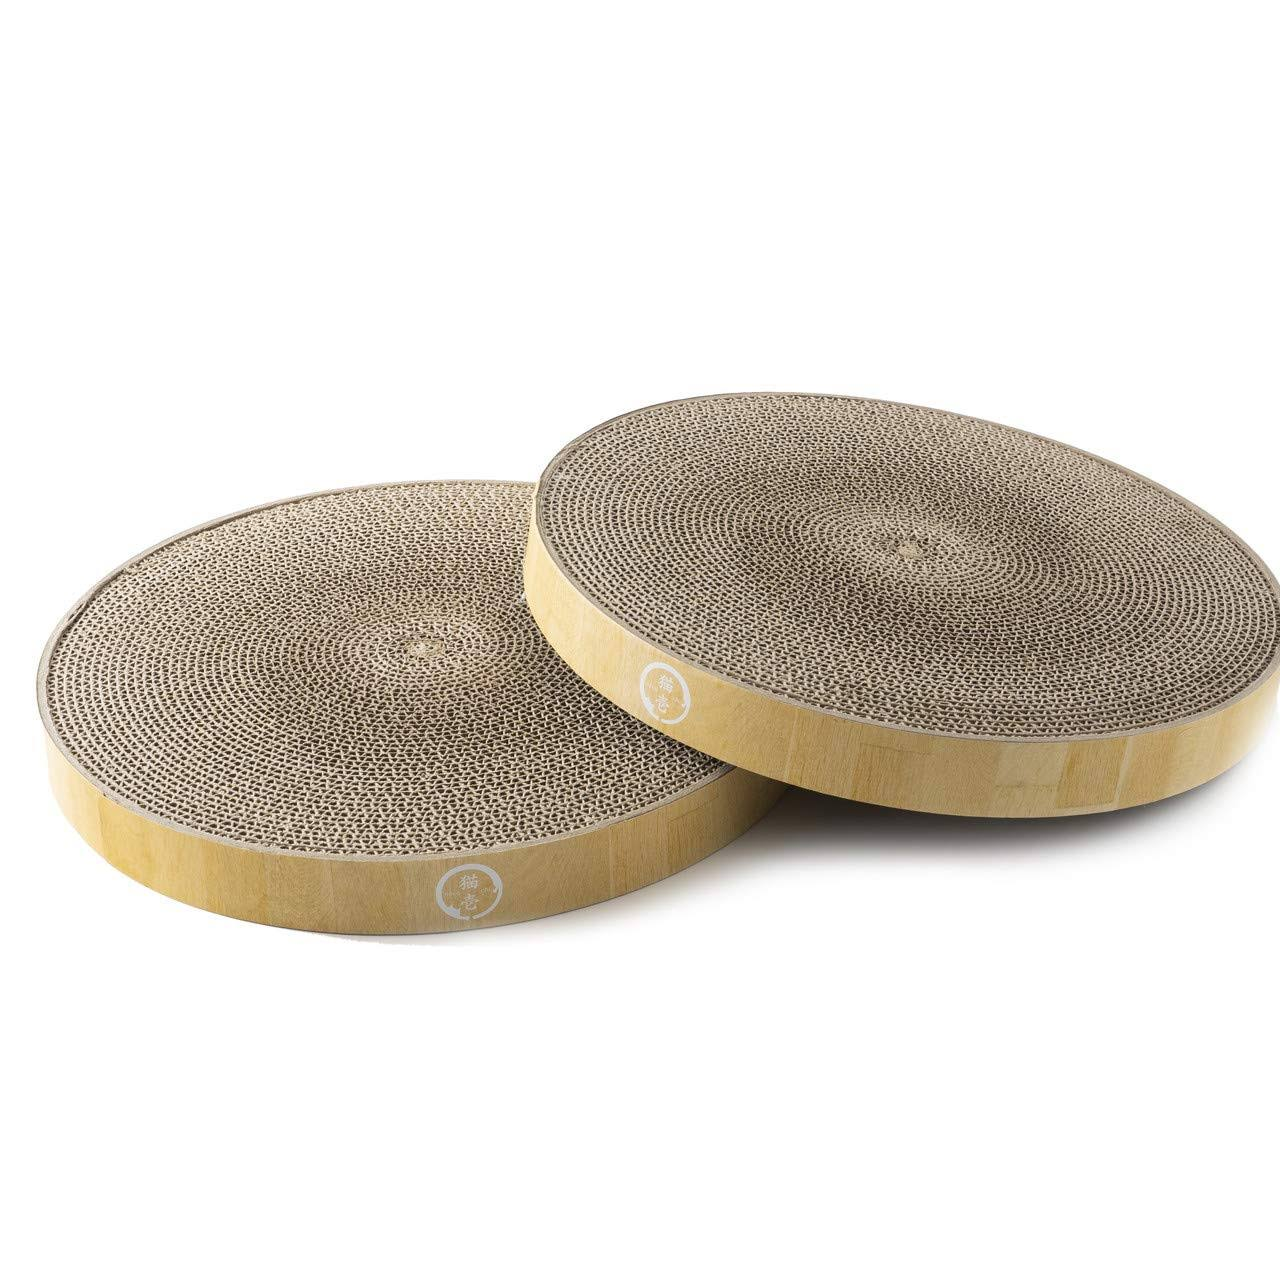 Necoichi Cozy Cat Scratcher Bowl Replacement Pads, 2 Count